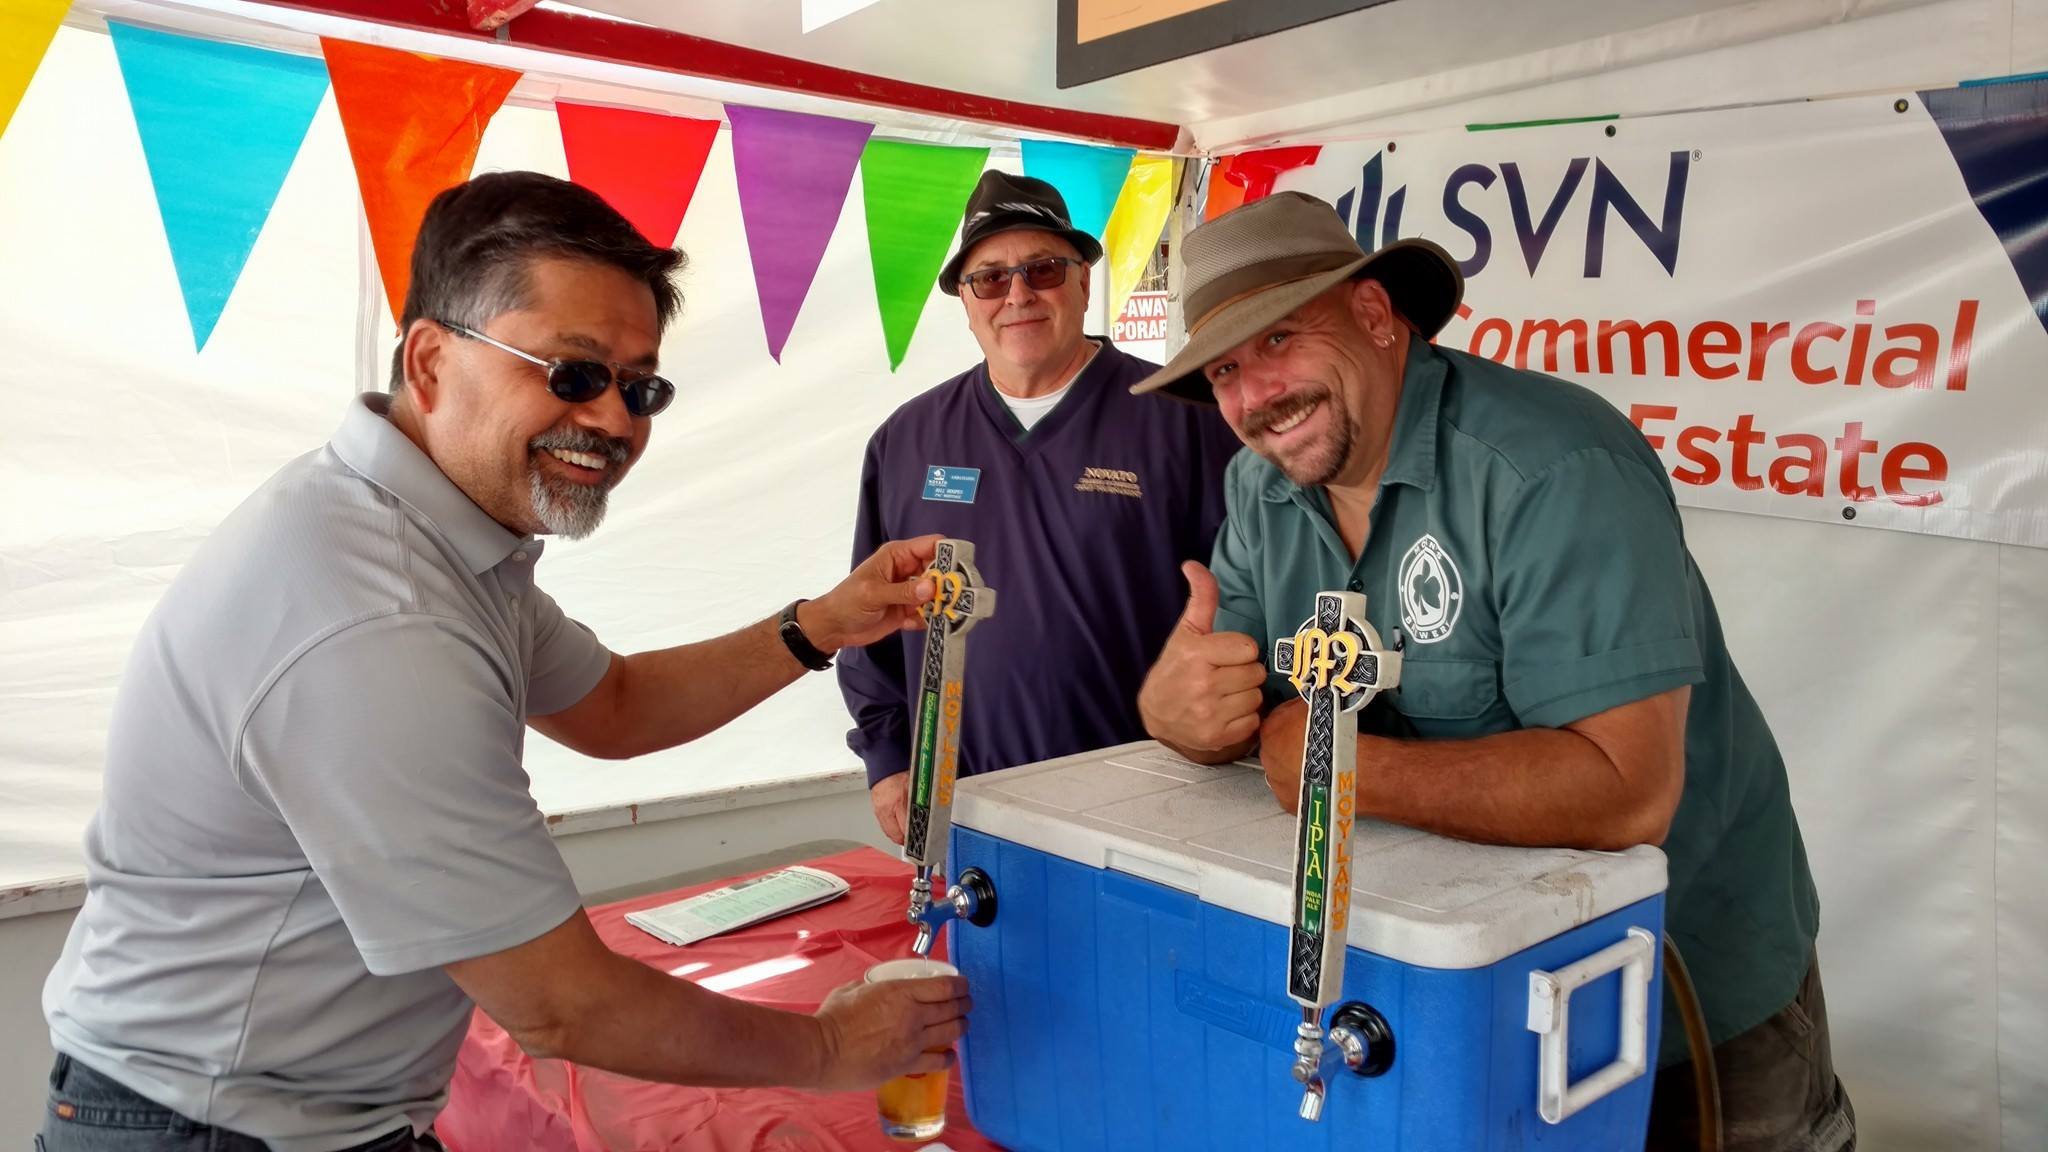 We are always looking for dedicated volunteers to help us pour beer, wine and assist with clean up and take down